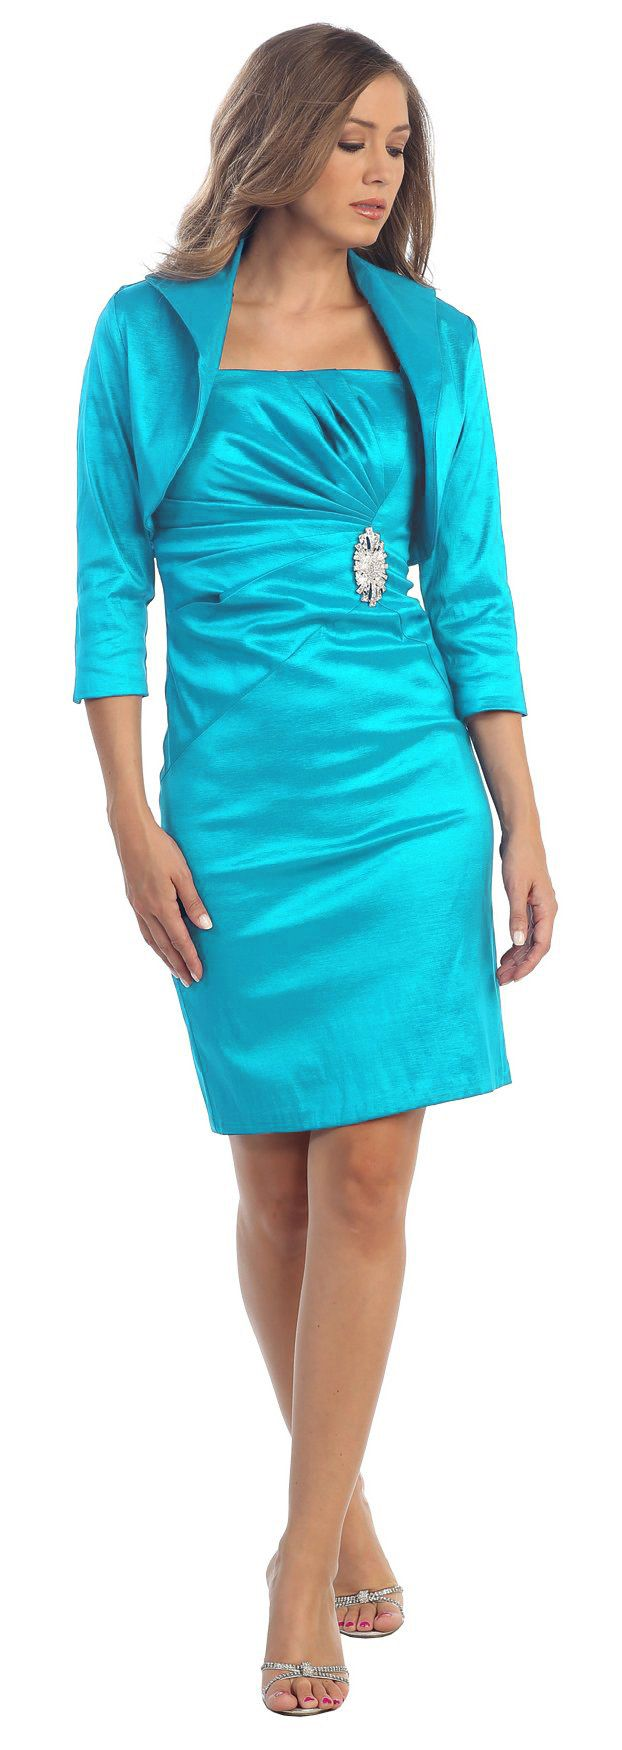 Taffeta Knee Length Turquoise Dress Includes 3/4 Length Bolero Jacket